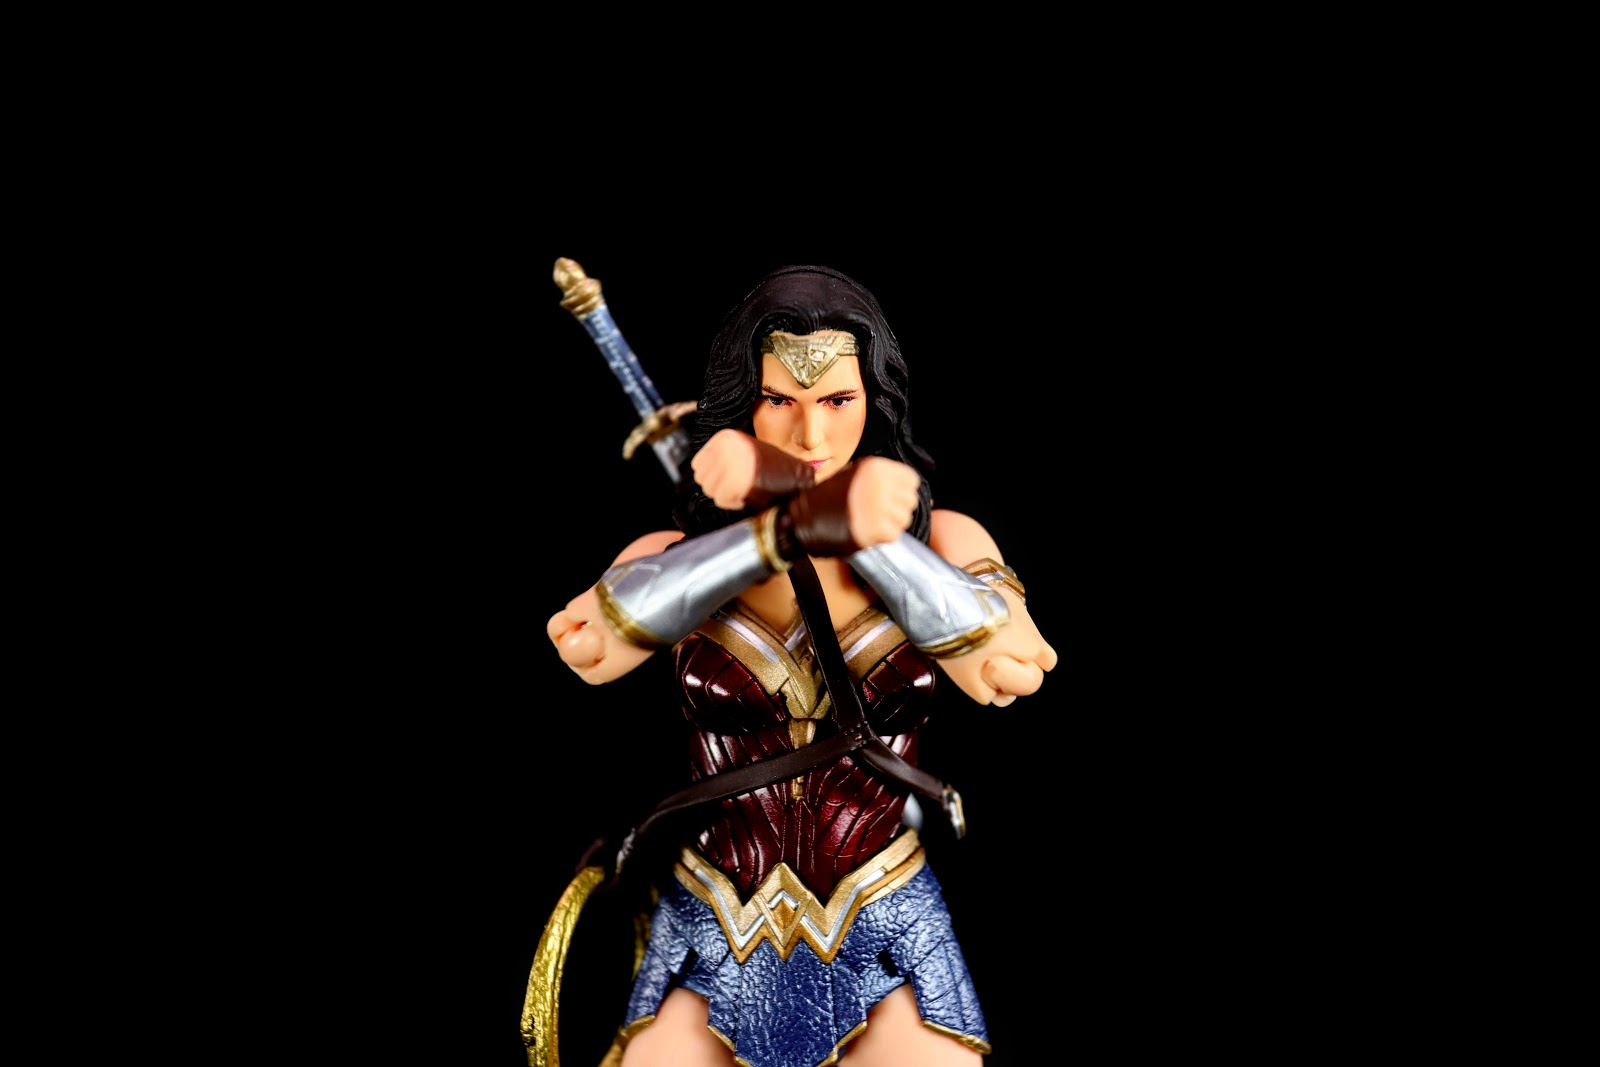 MAFEX No.060 WONDER WOMAN (Justice League)